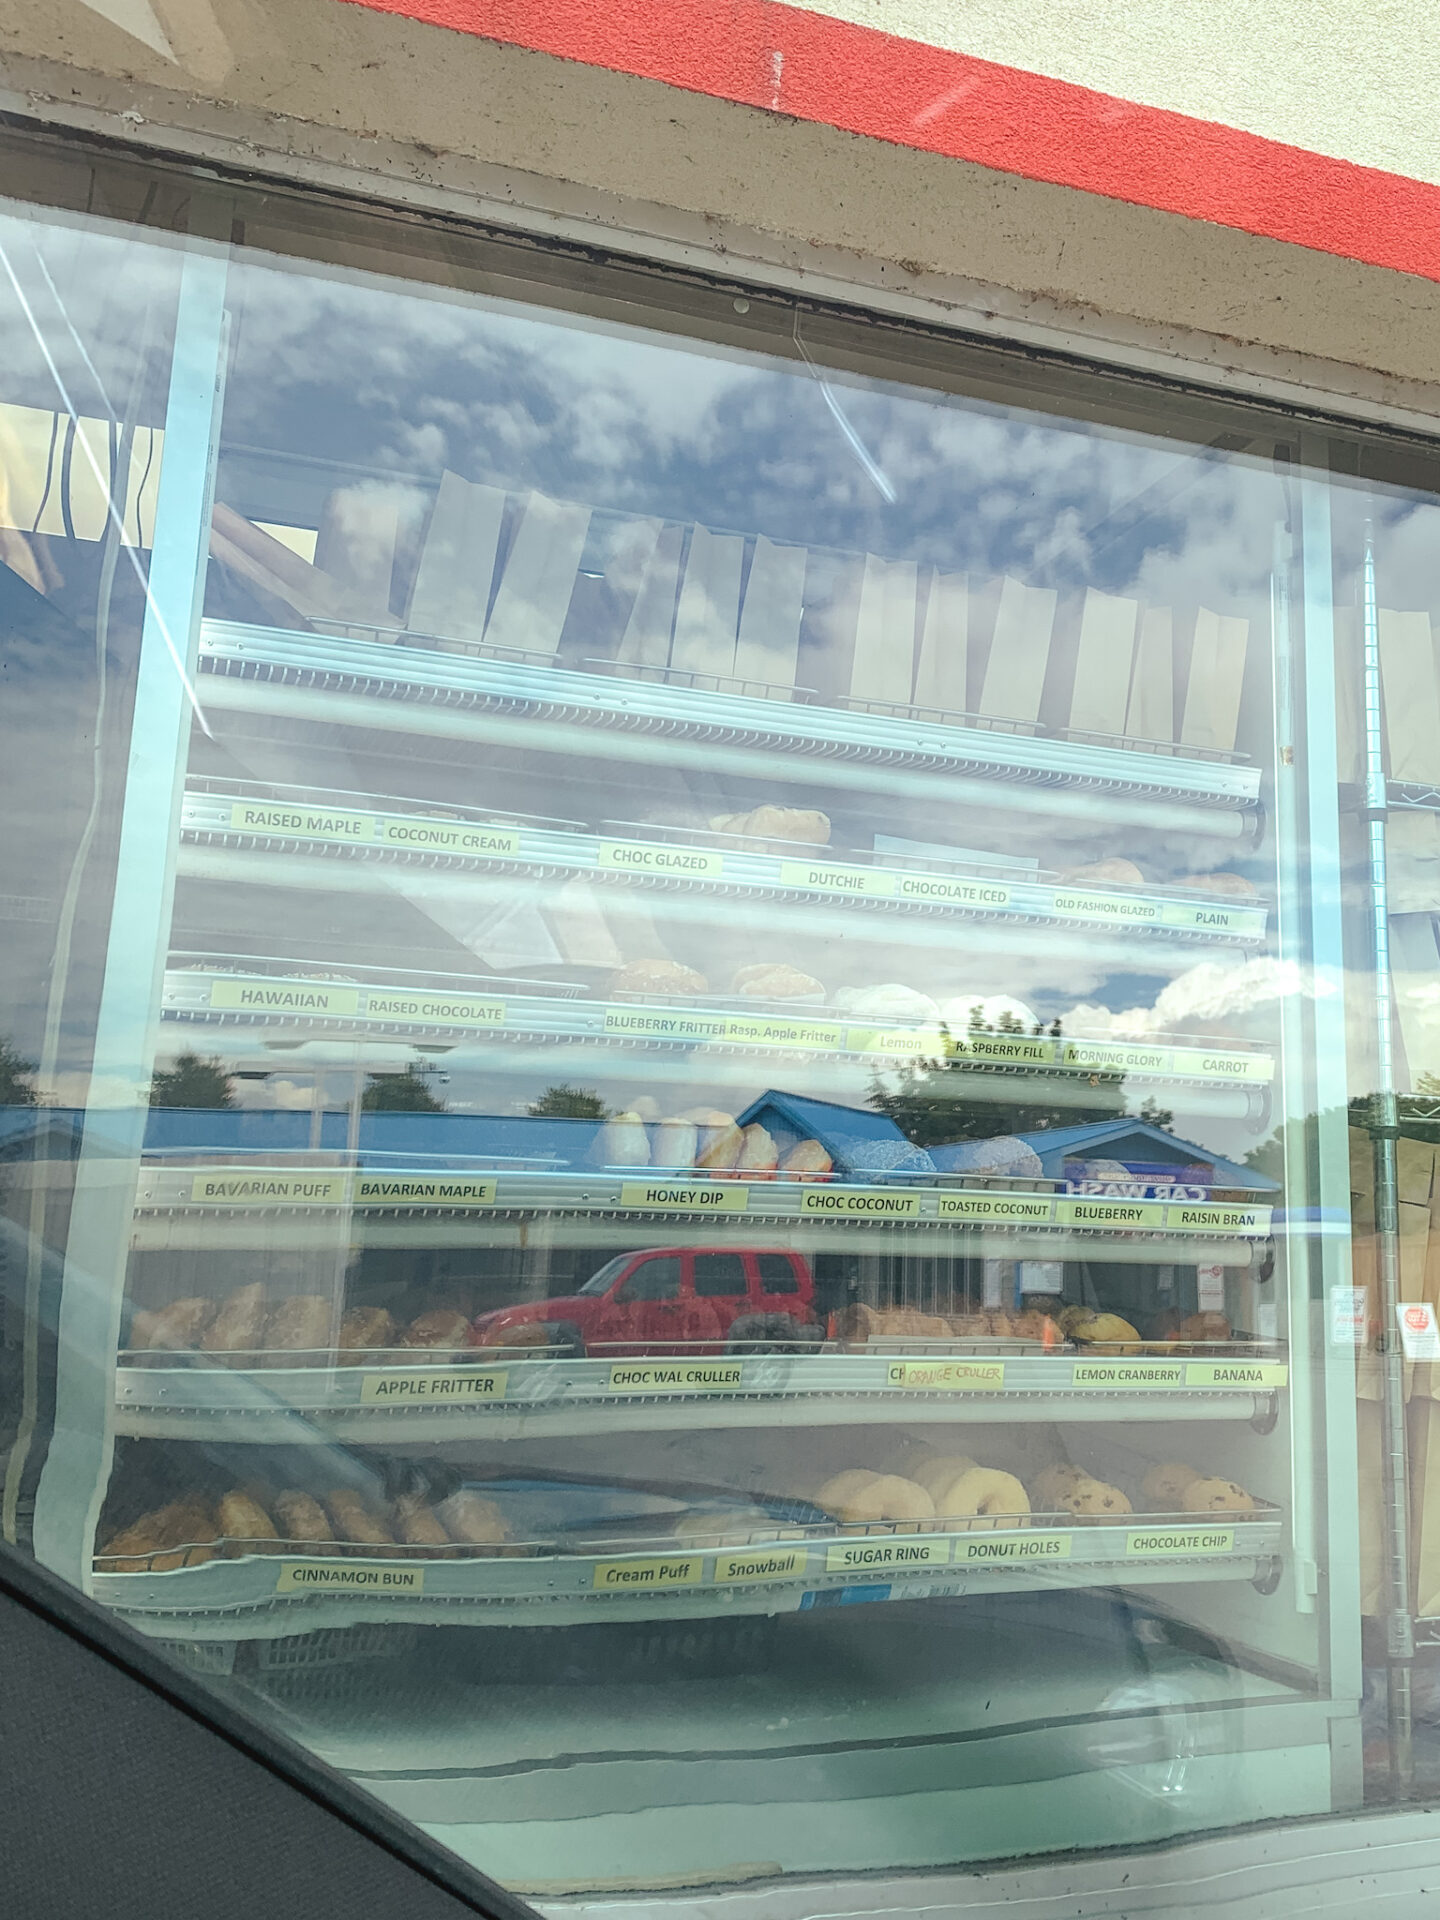 Skylight Donuts in Bowmanville, Ontario